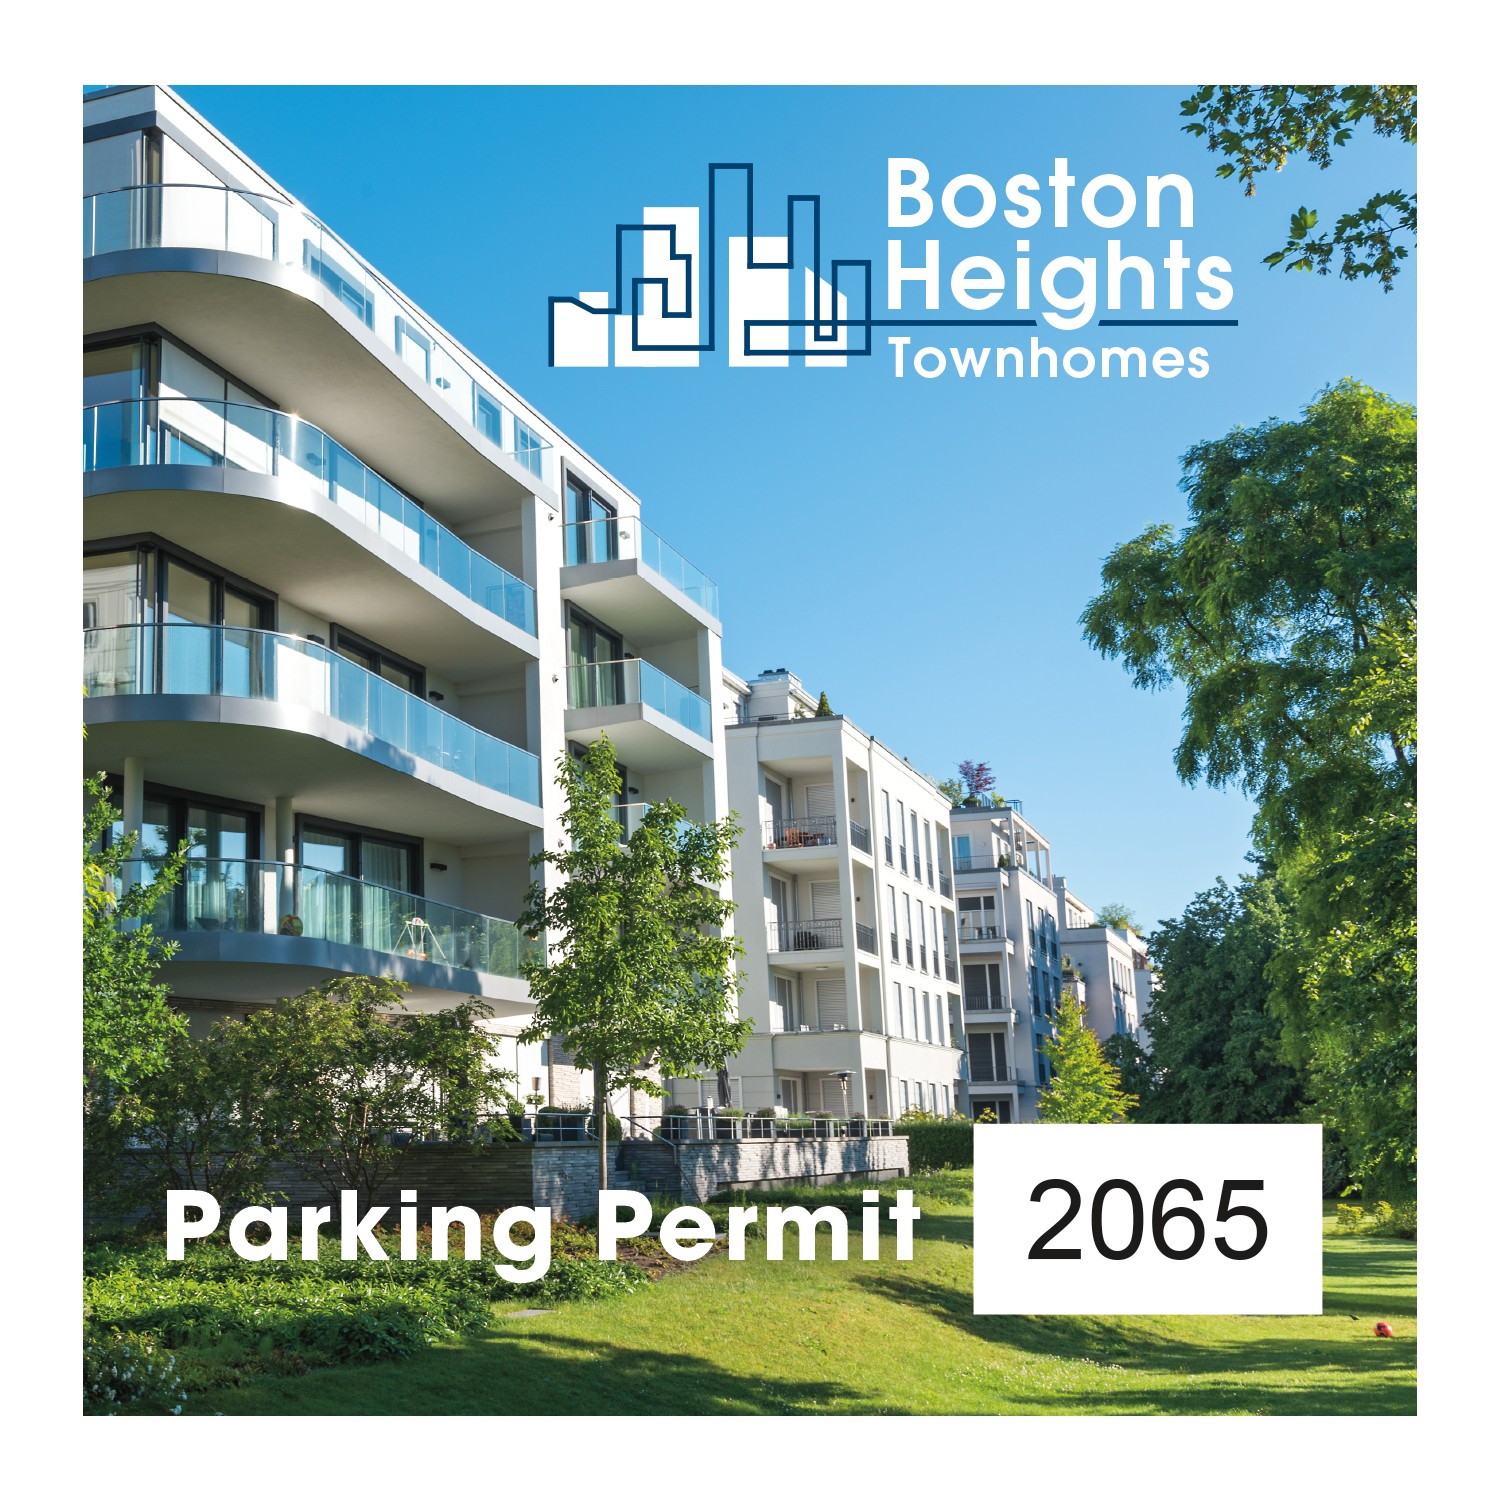 "785489555-183 - Square White Vinyl Full Color Outside Parking Permit Decal (3""x3"") - thumbnail"